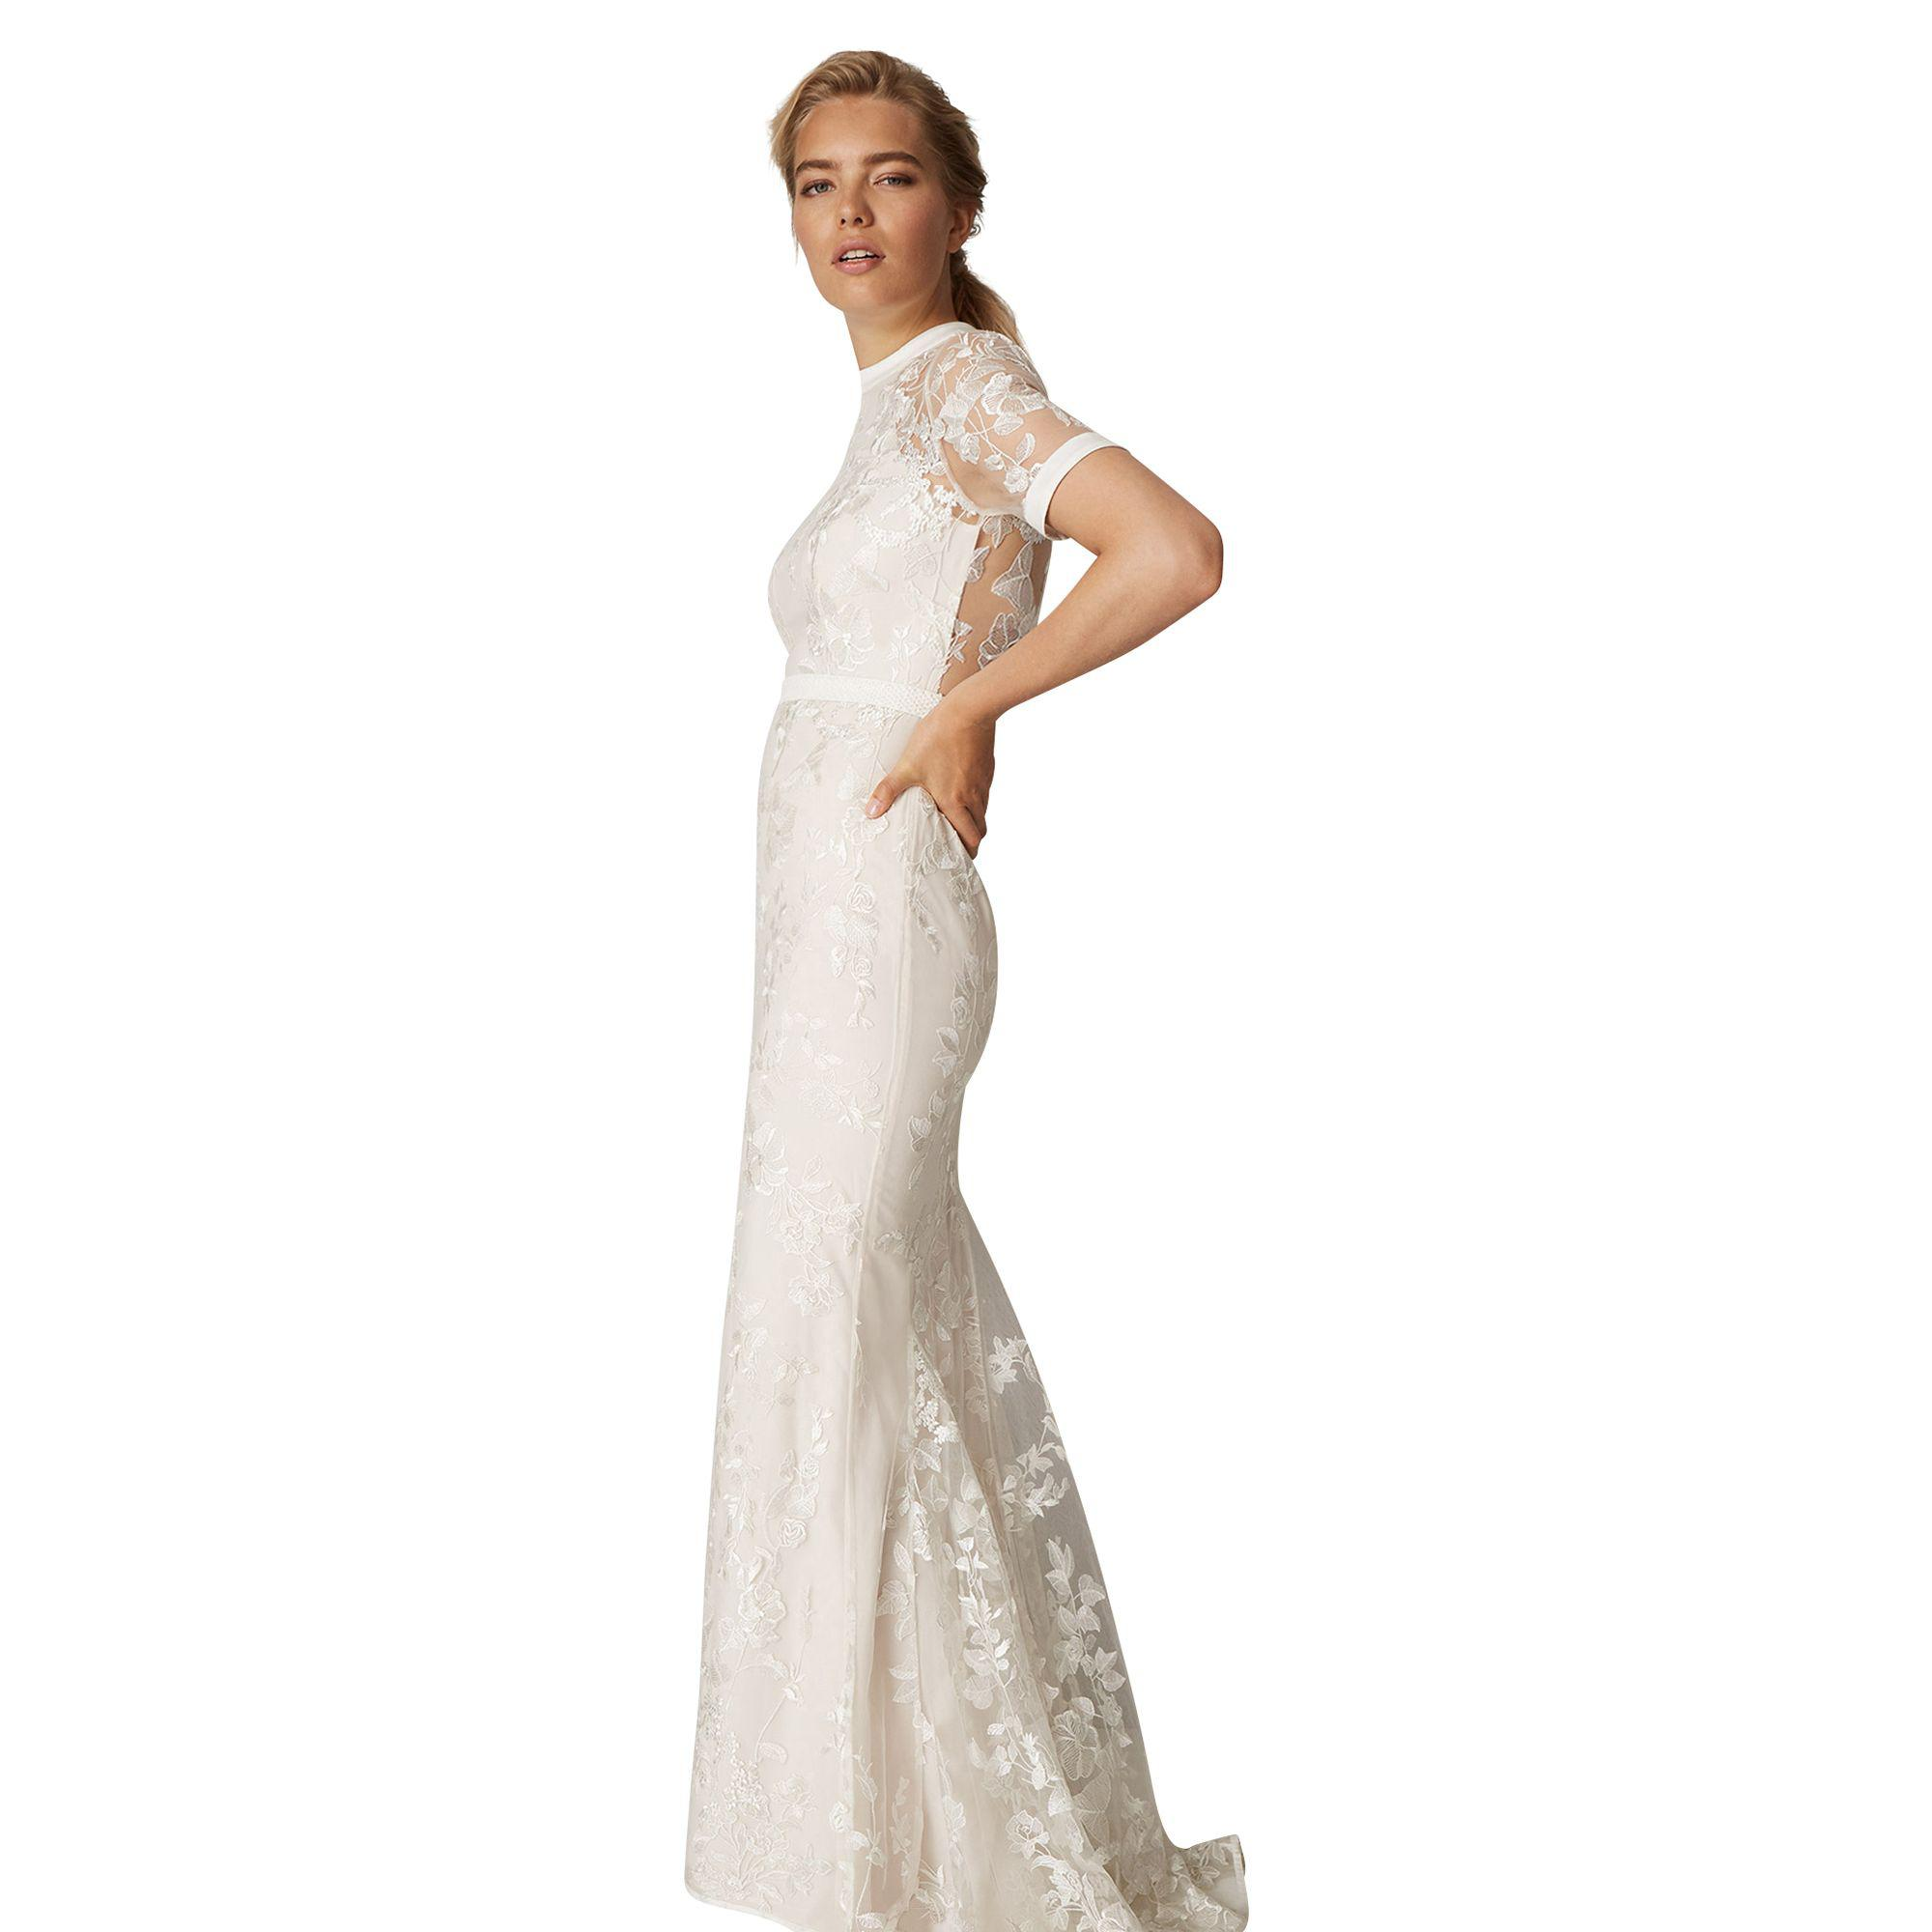 c7213e397bf76 Phase Eight Natural Poppy Embroidered Bridal Dress in Natural - Lyst